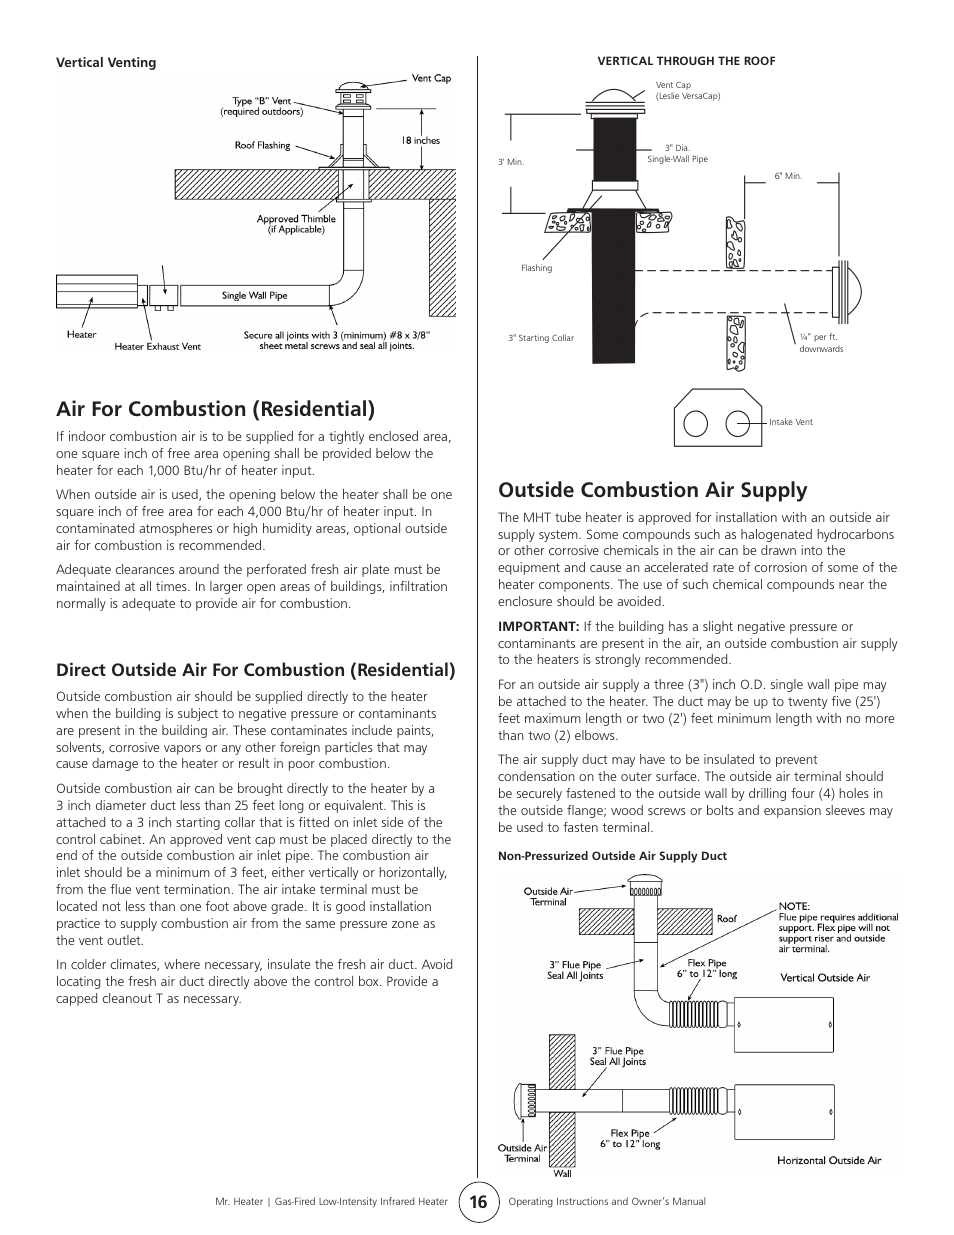 outside combustion air supply air for combustion residential rh manualsdir com